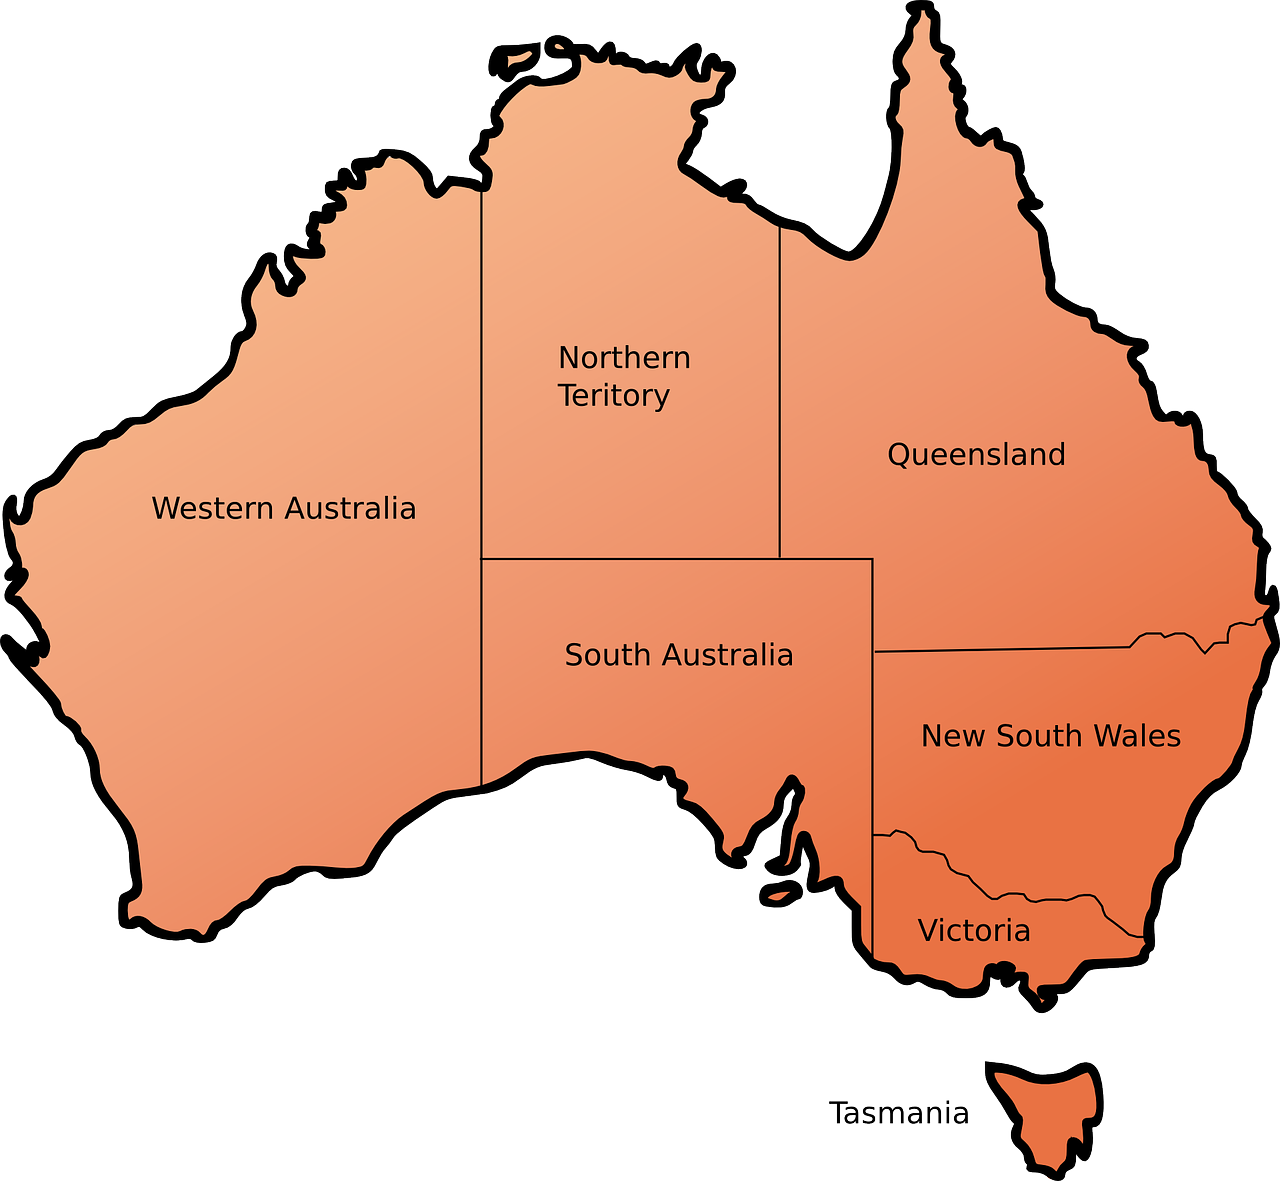 Families in regional, rural and remote Australia – An AFIS Report